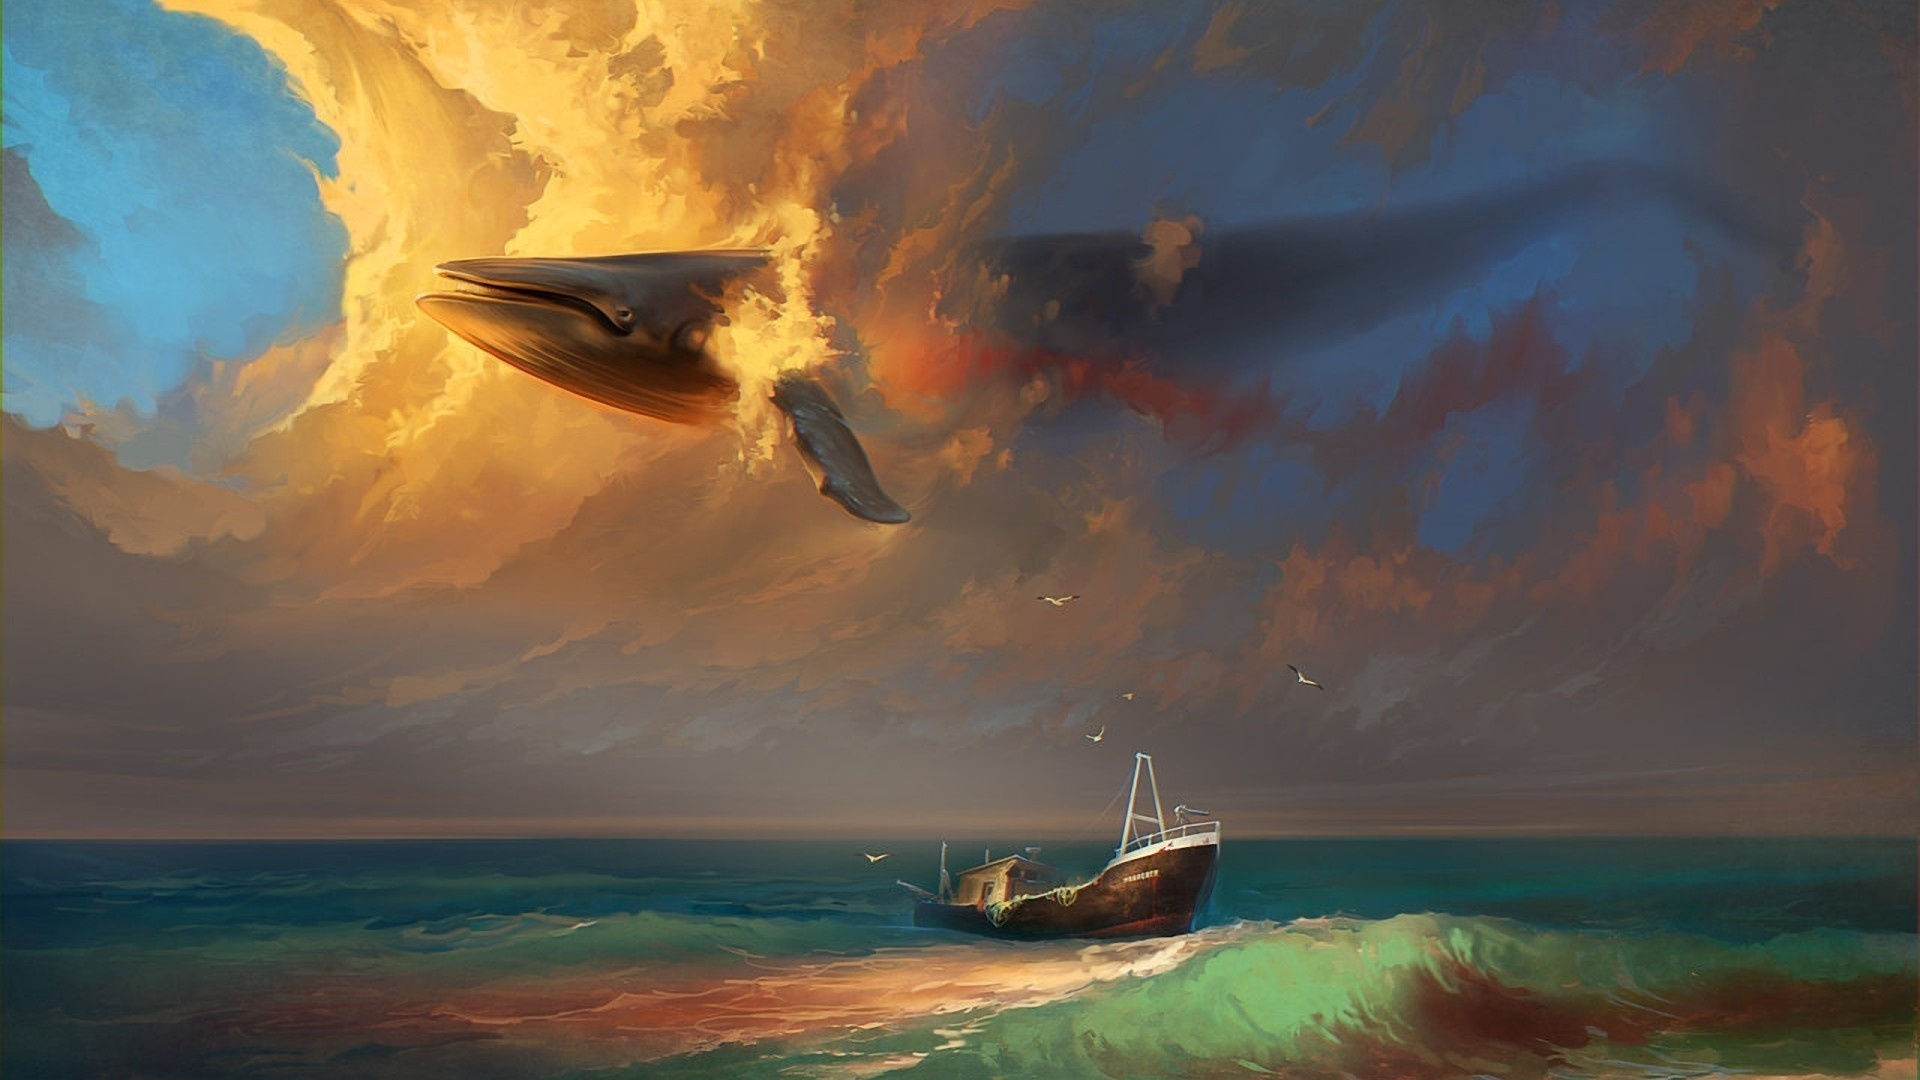 Flying Whale [1920x1080] wallpapers 1920x1080